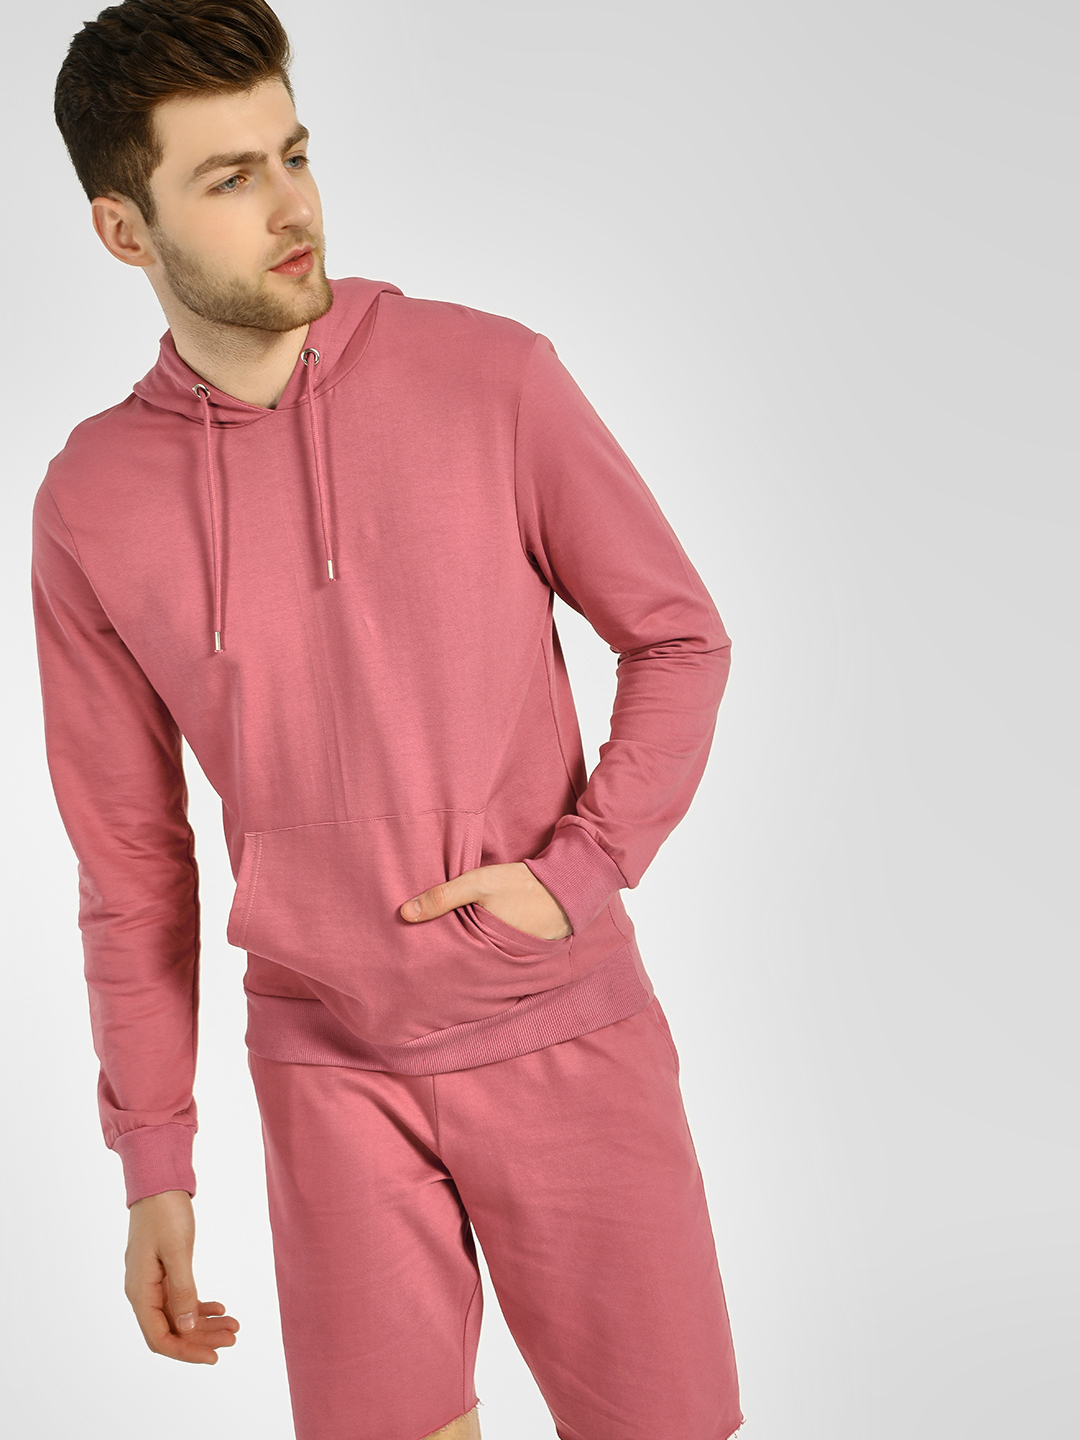 KOOVS Pink Basic Casual Hooded Sweatshirt 1